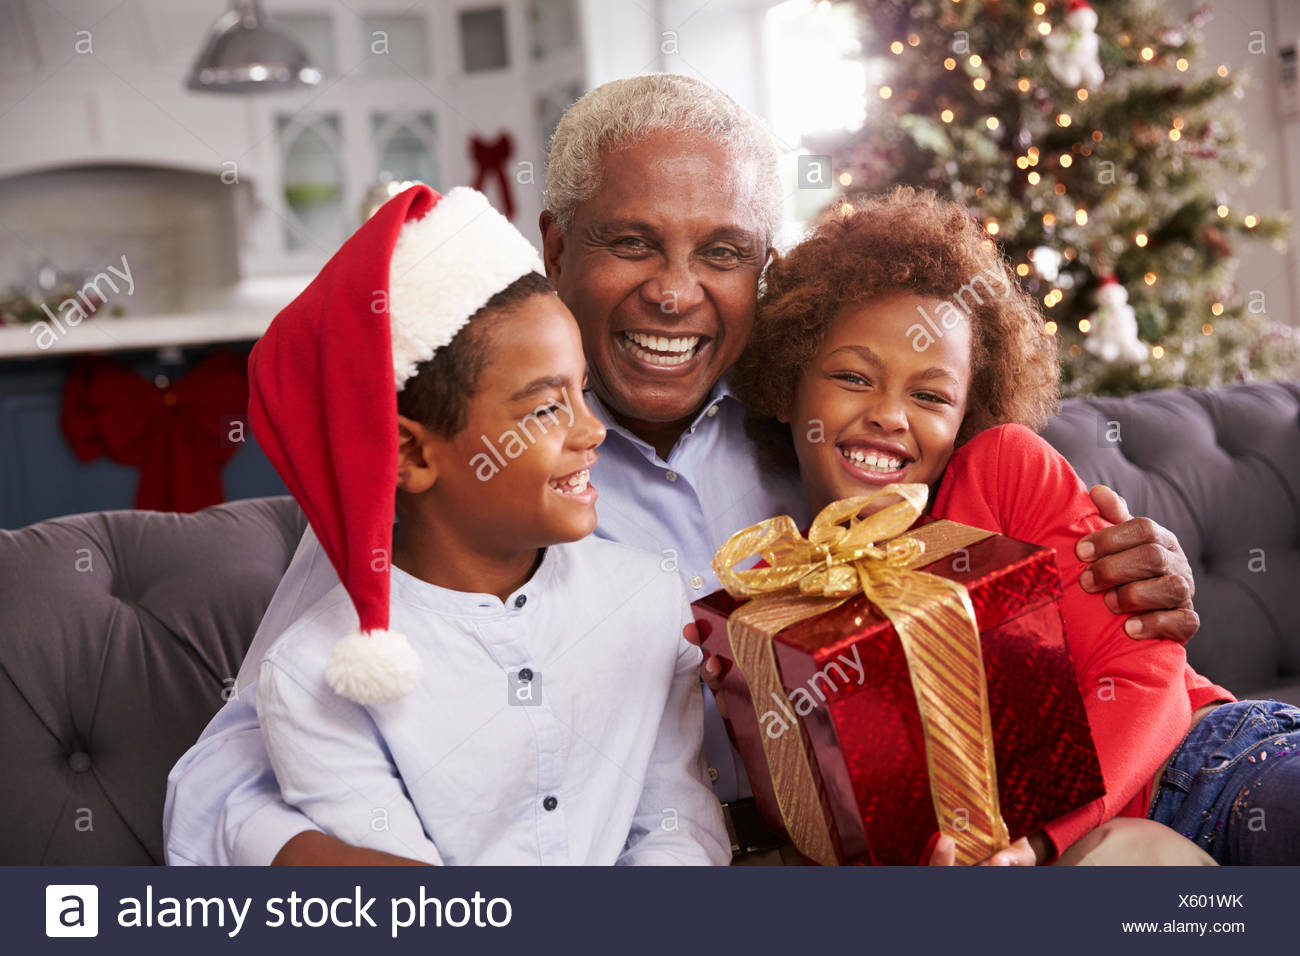 Grandfather With Grandchildren Opening Christmas Gifts Stock Photo ...